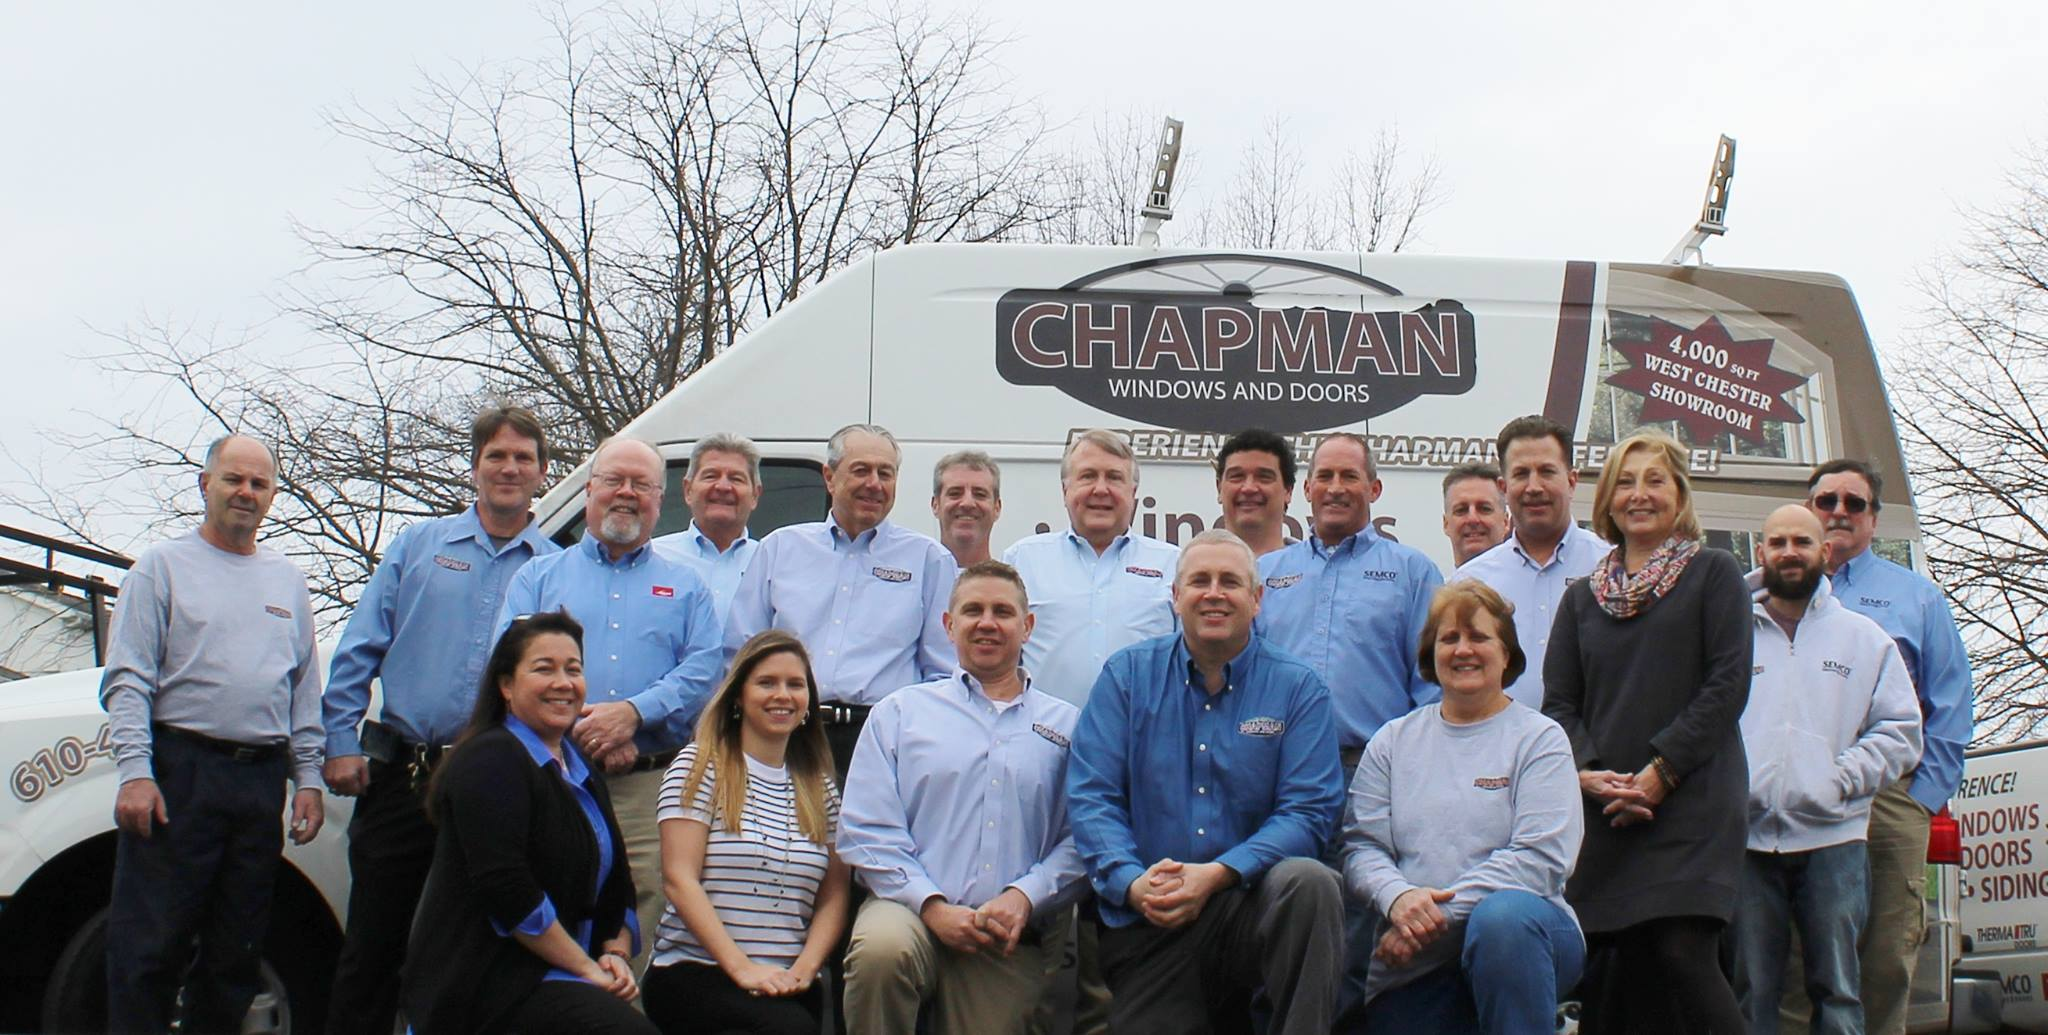 Chapman Windows and Doors Home Improvement Contractors